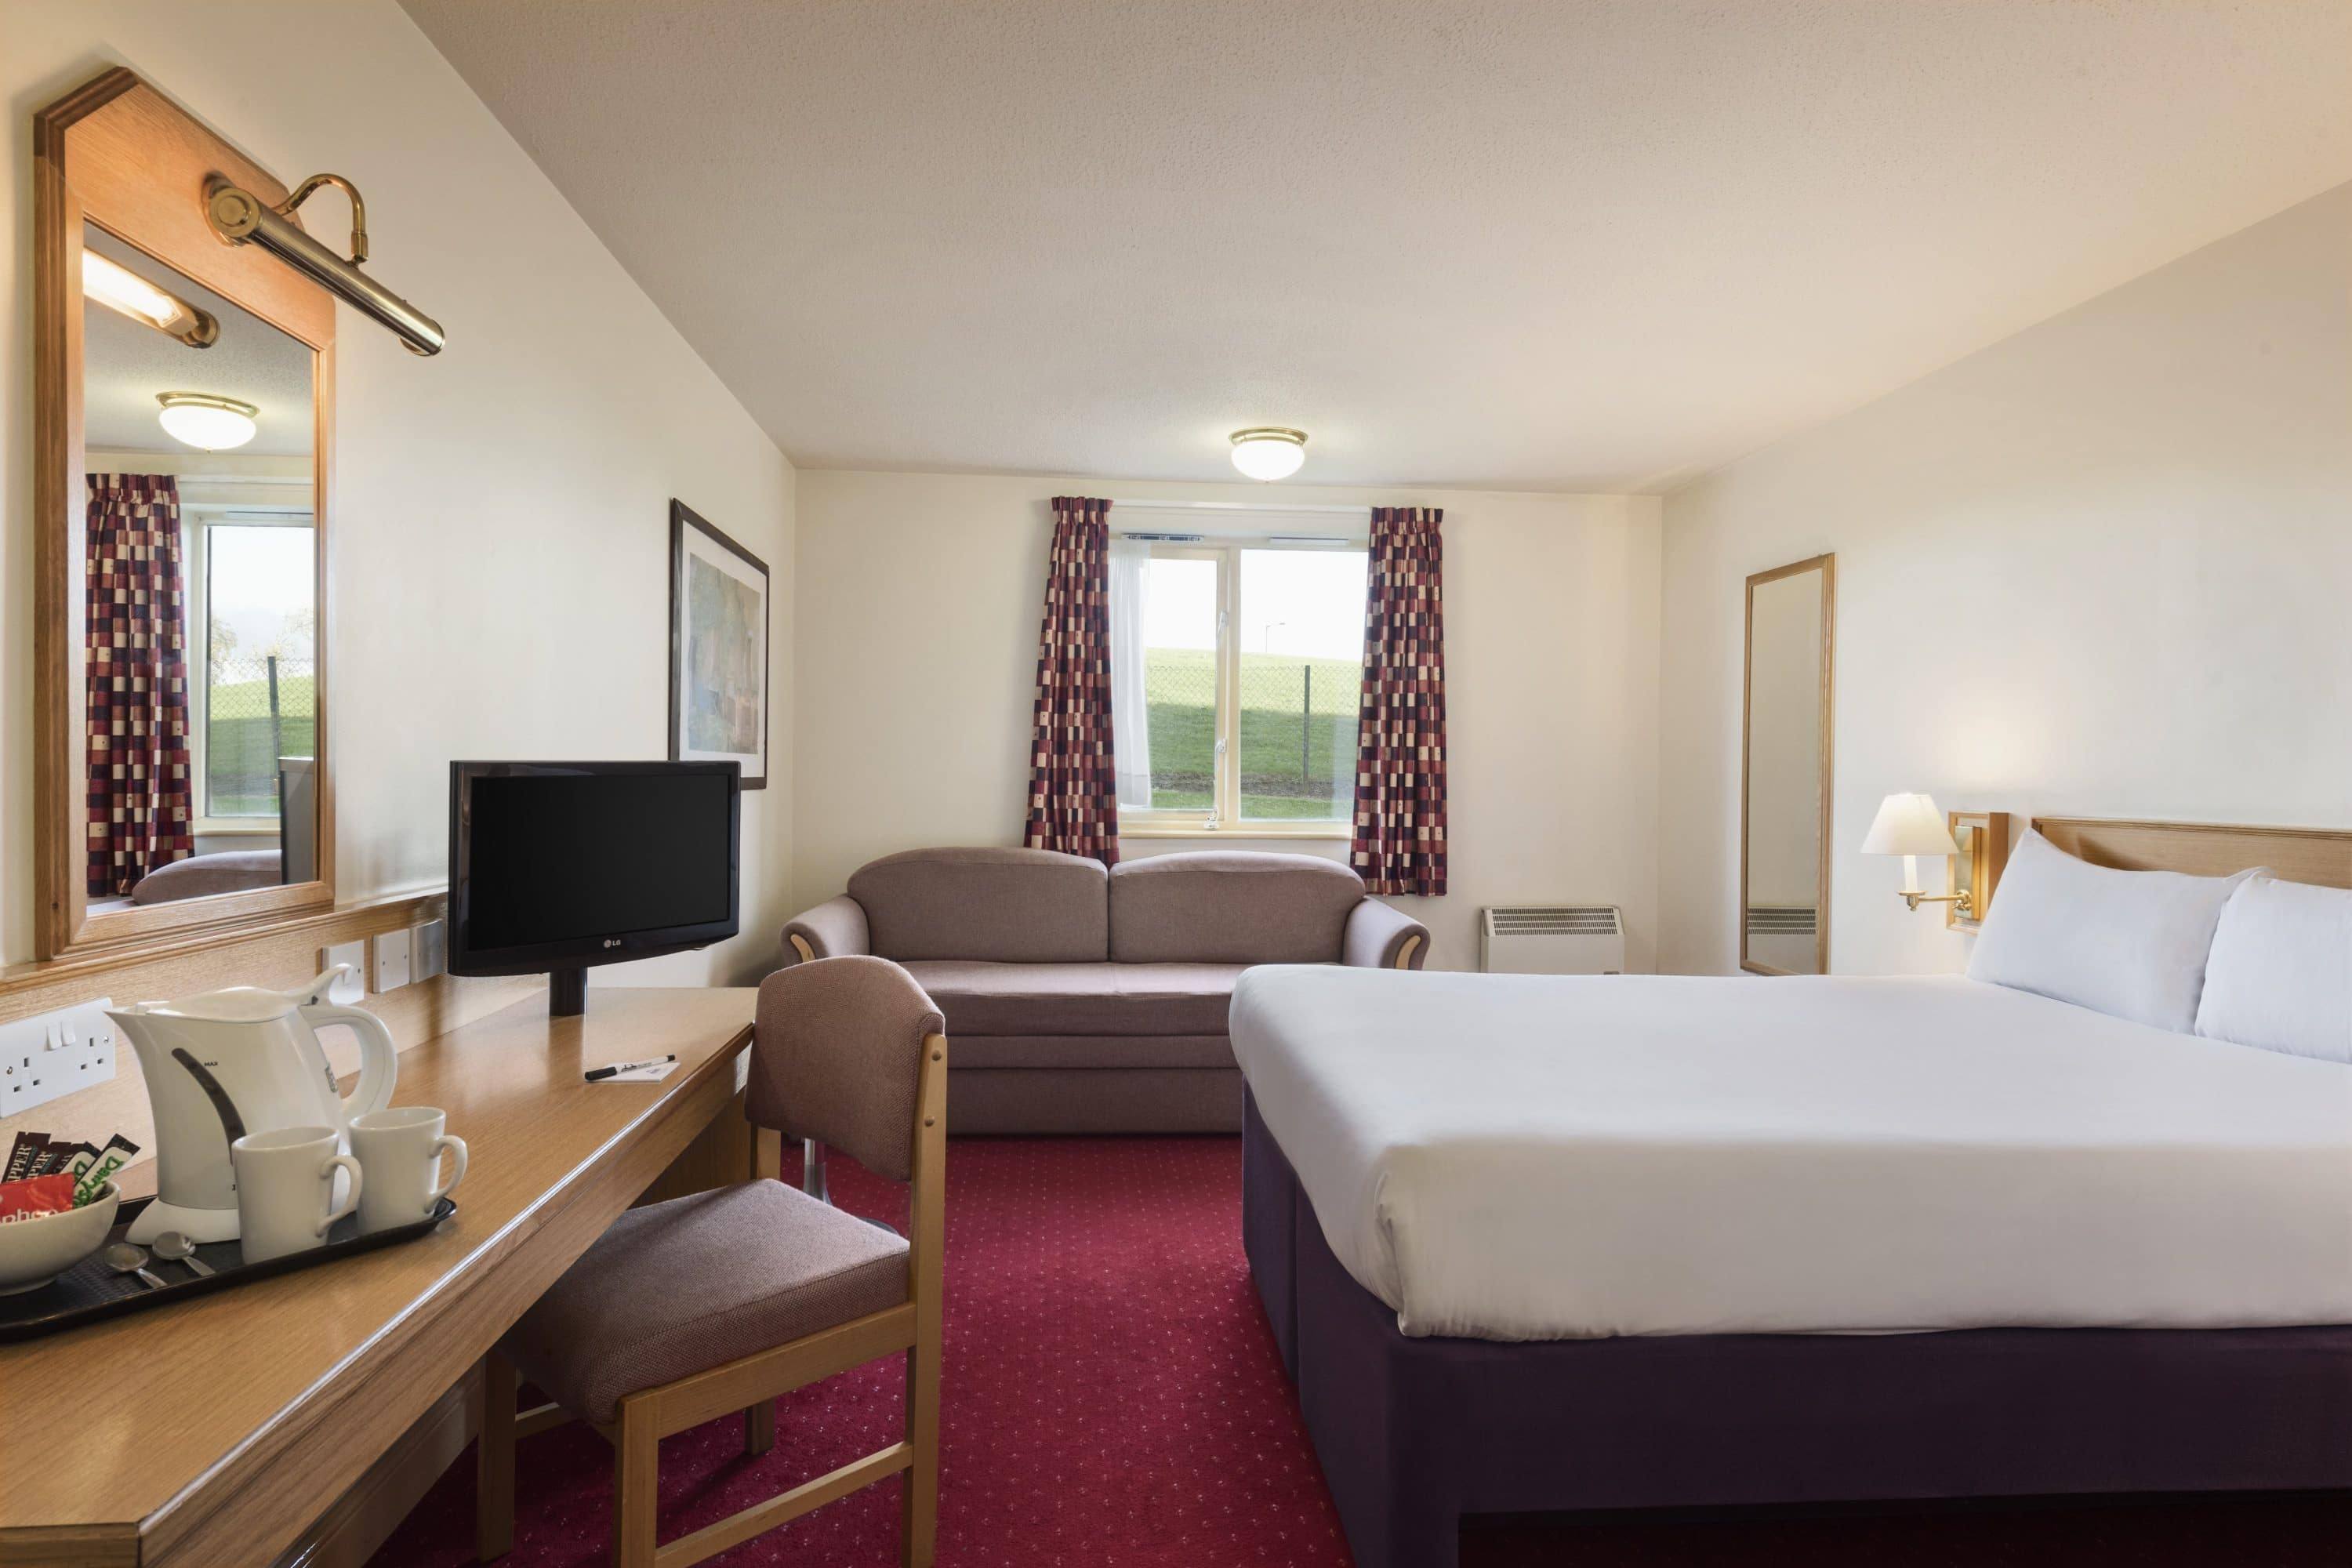 Guest room at the Days Inn Tewkesbury Strensham in Strensham, Other than US/Canada